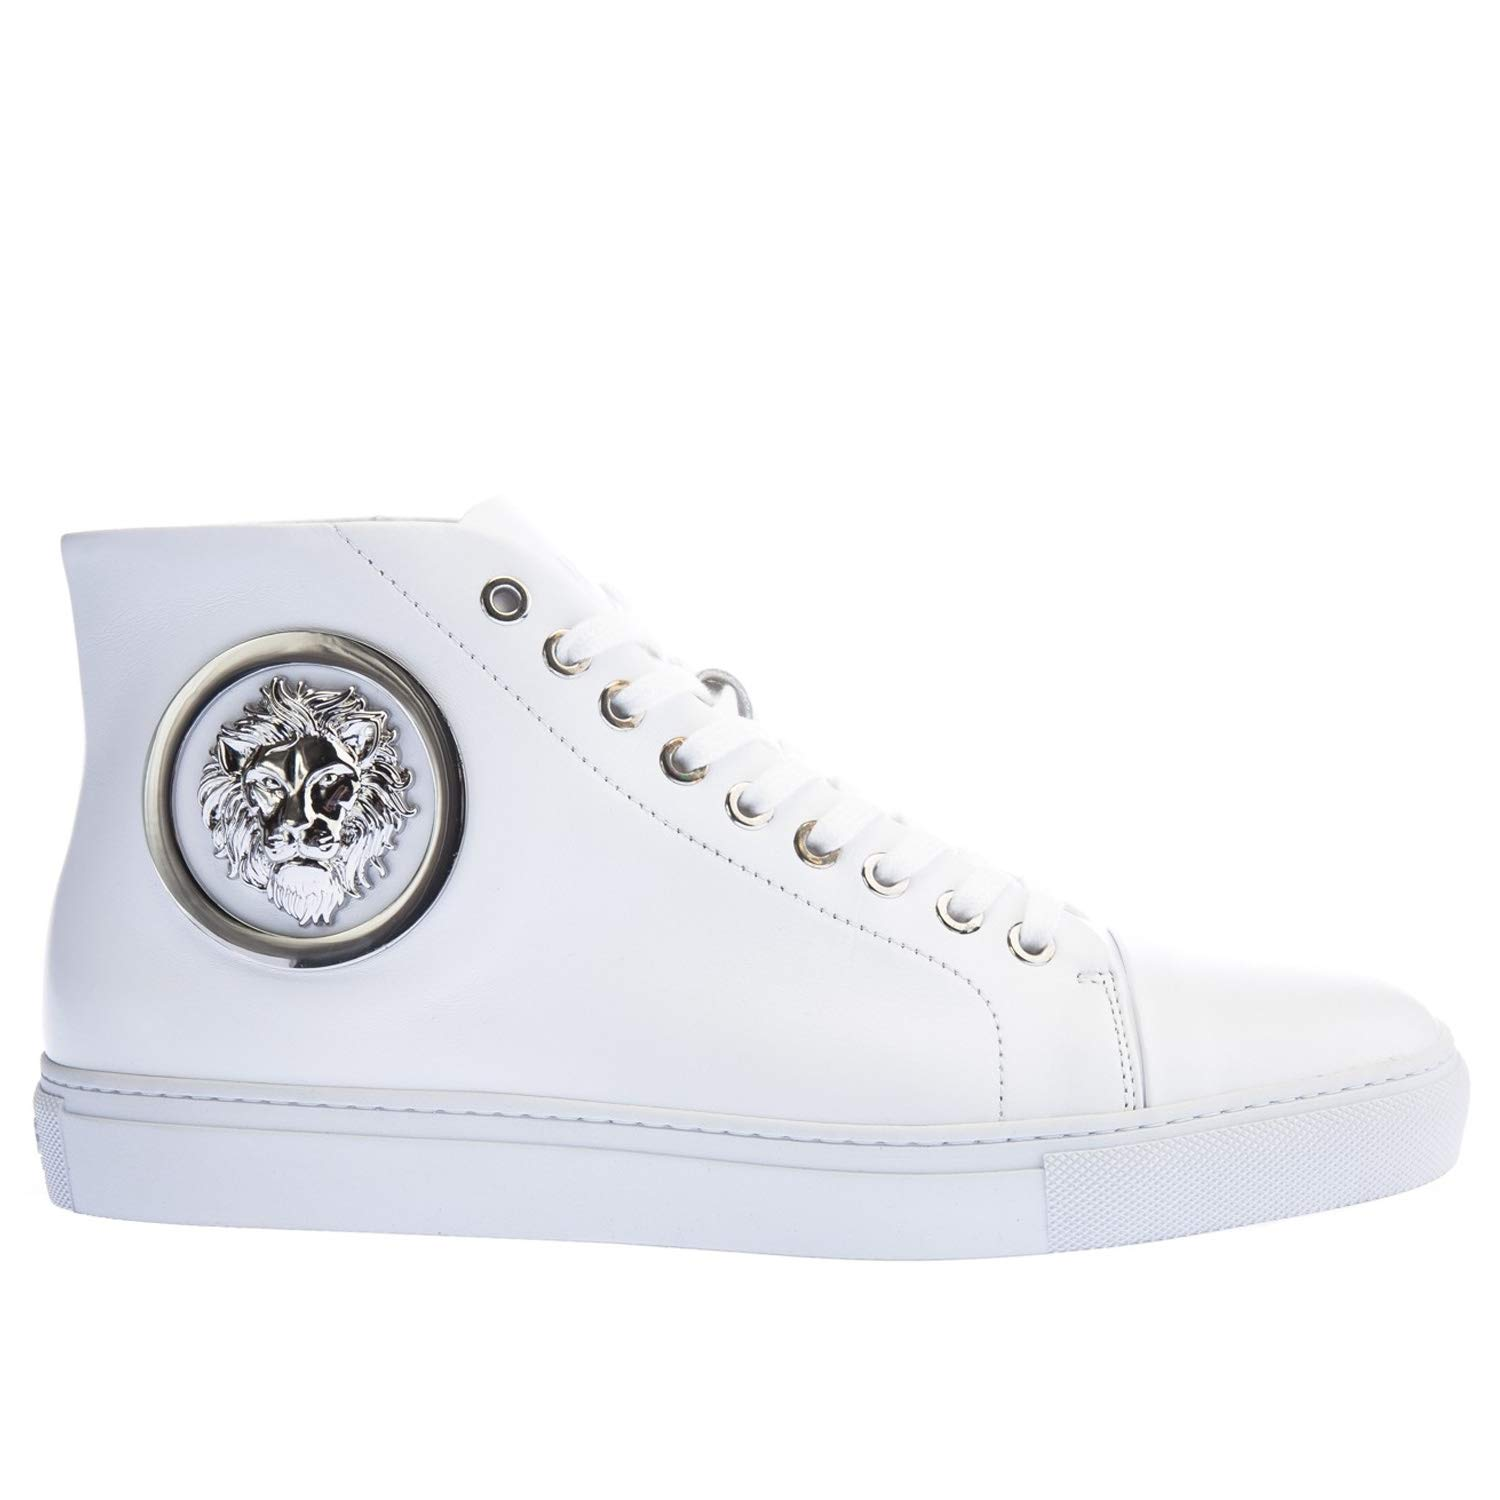 d2151cb3eb Versus Versace High Top Trainer in White: Amazon.co.uk: Shoes & Bags